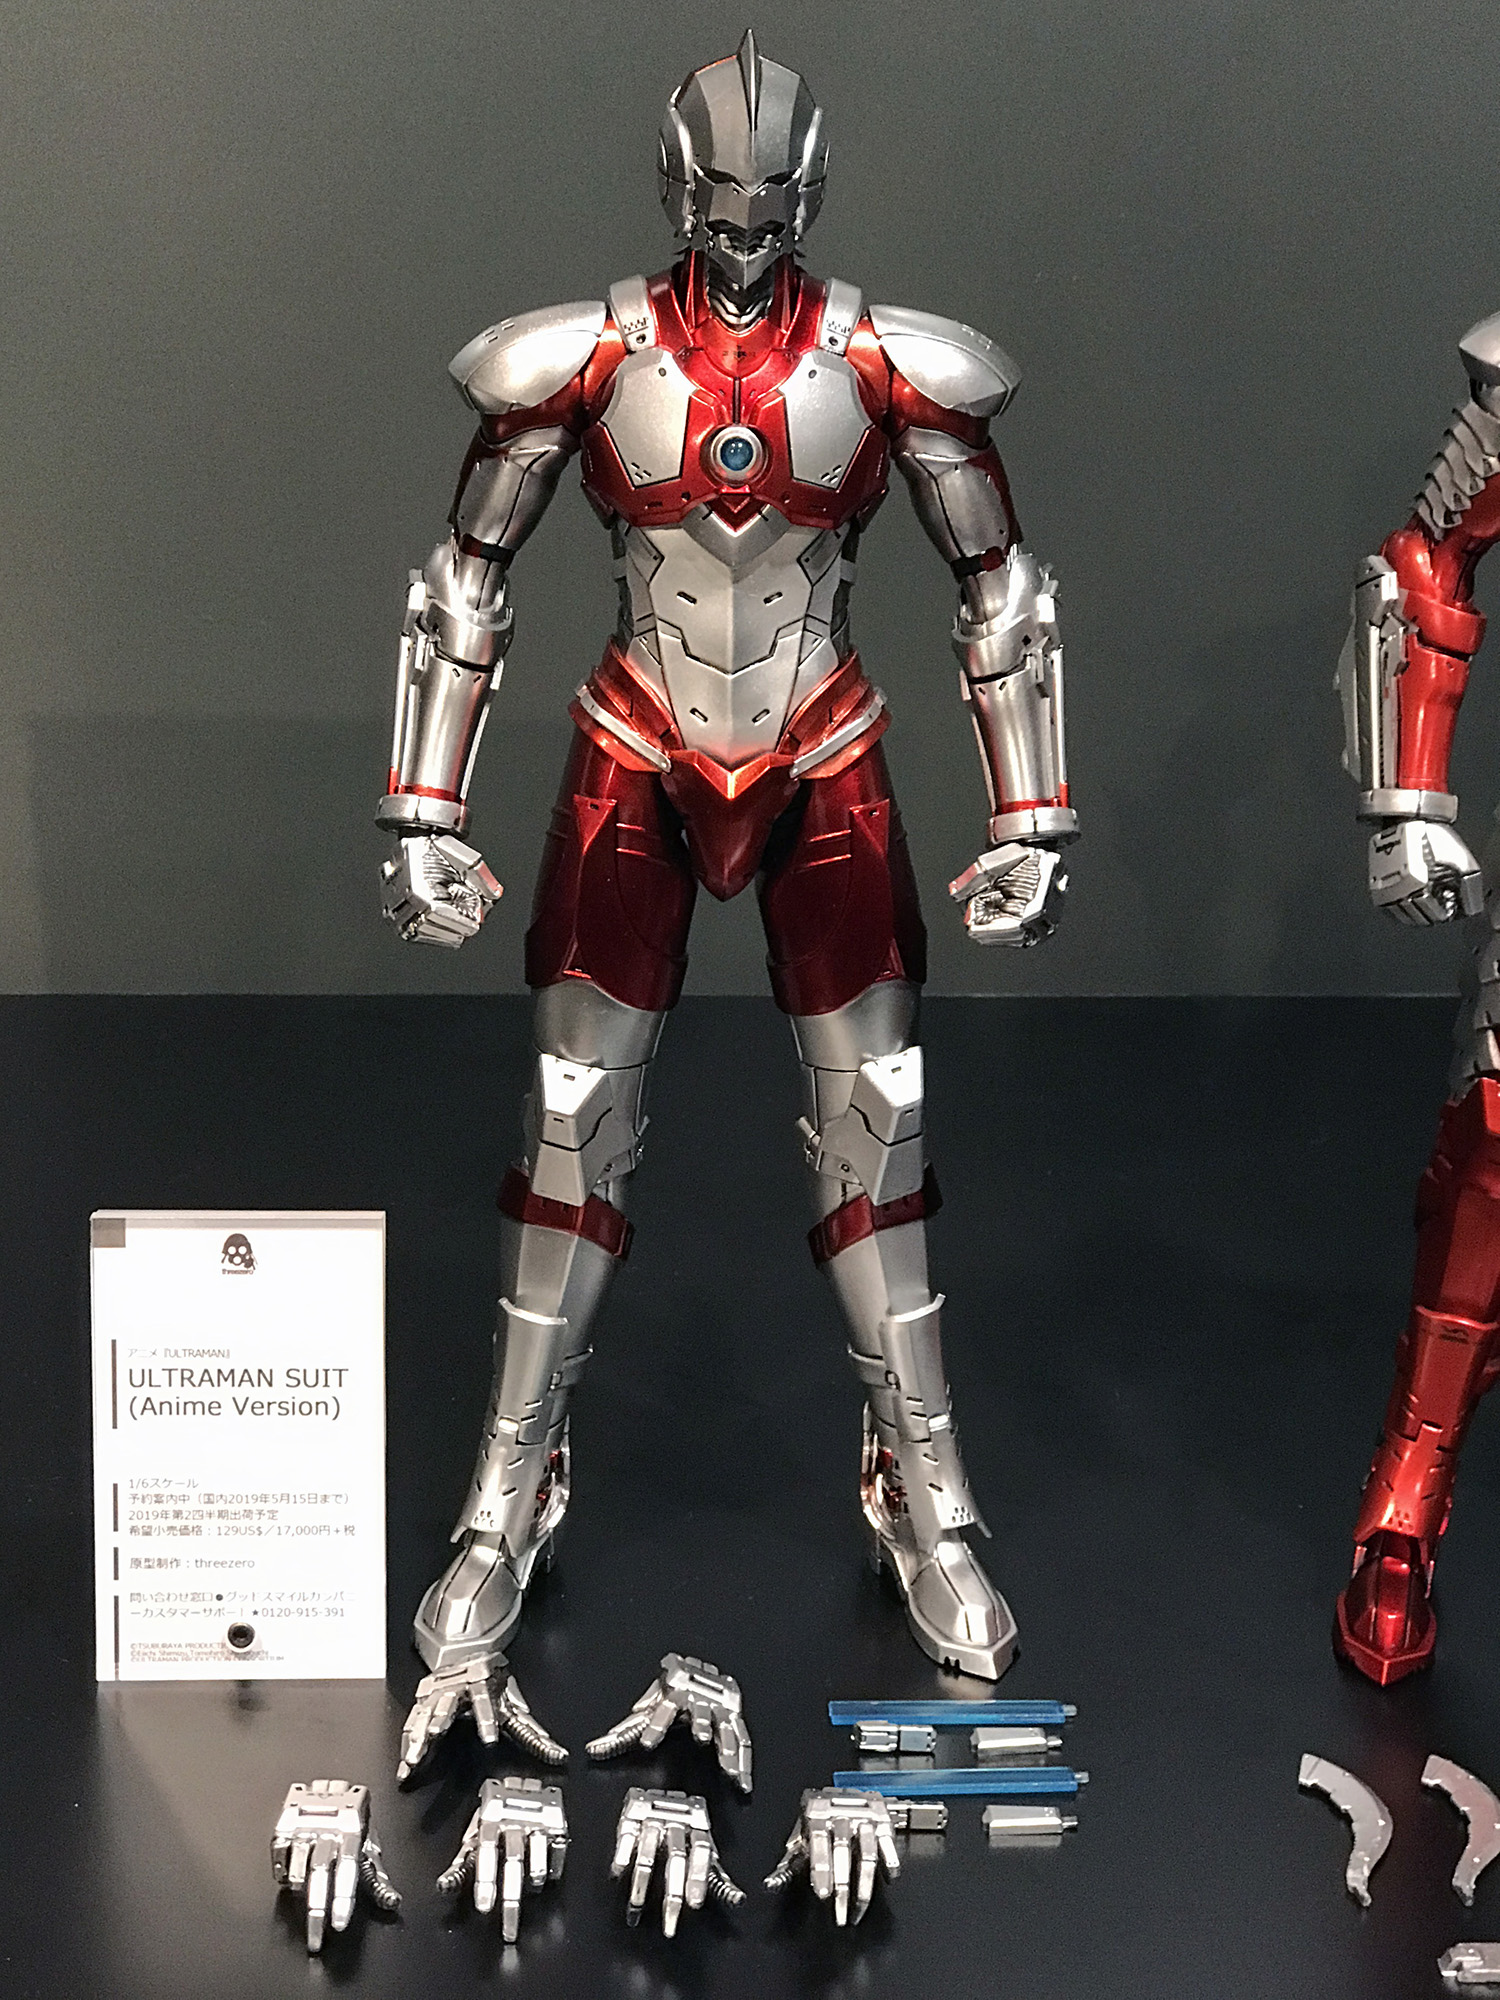 ultramanexhibit_03.jpg